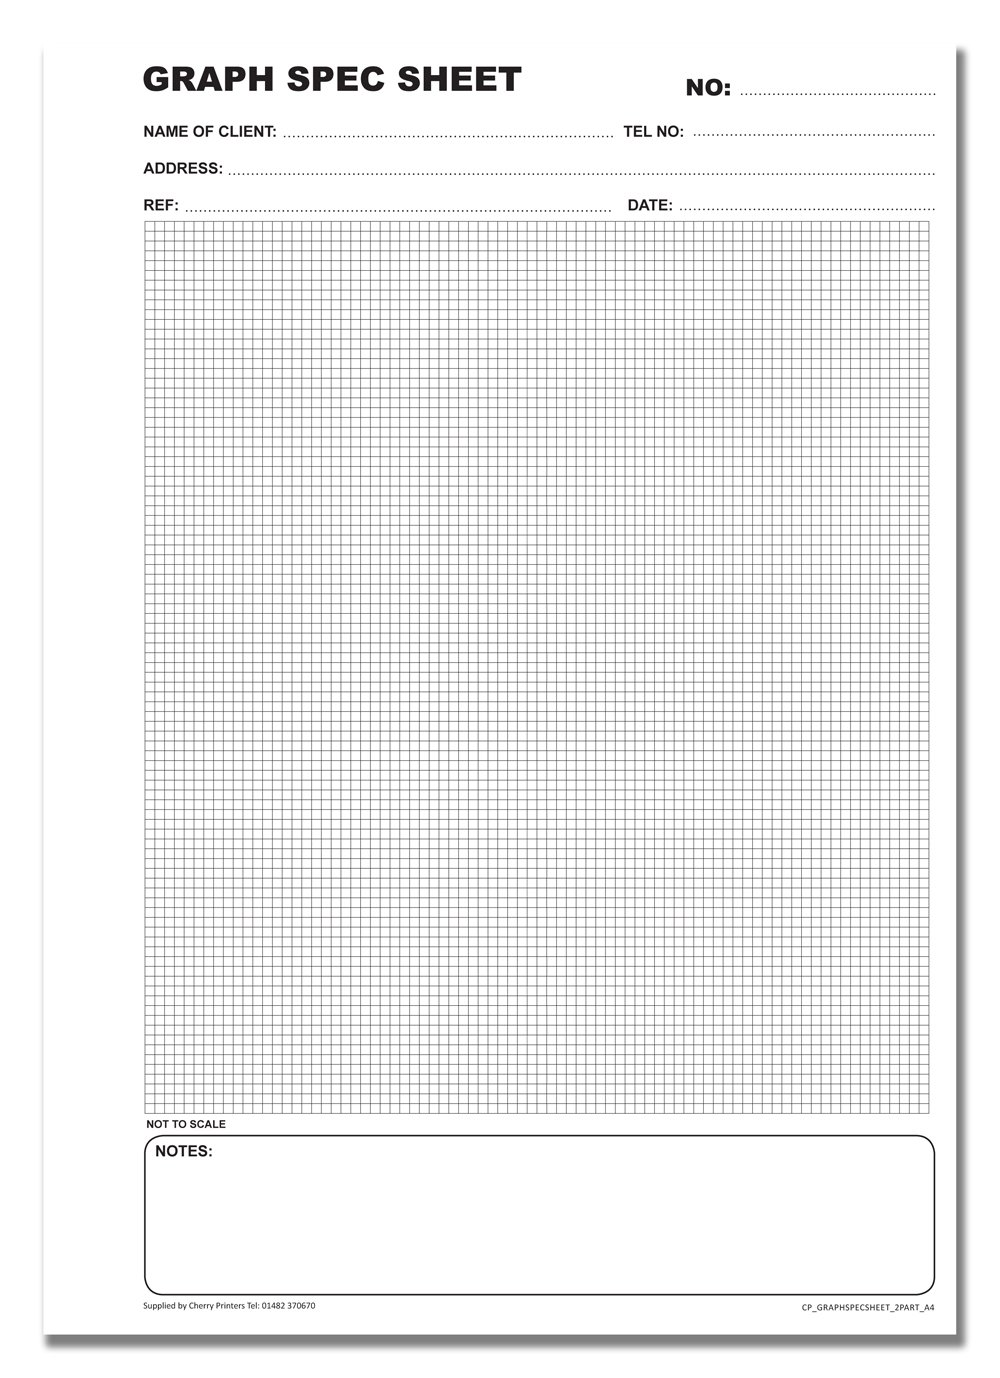 Cherry Carbonless NCR Graph Spec Sheet Duplicate Book A4 50 sets